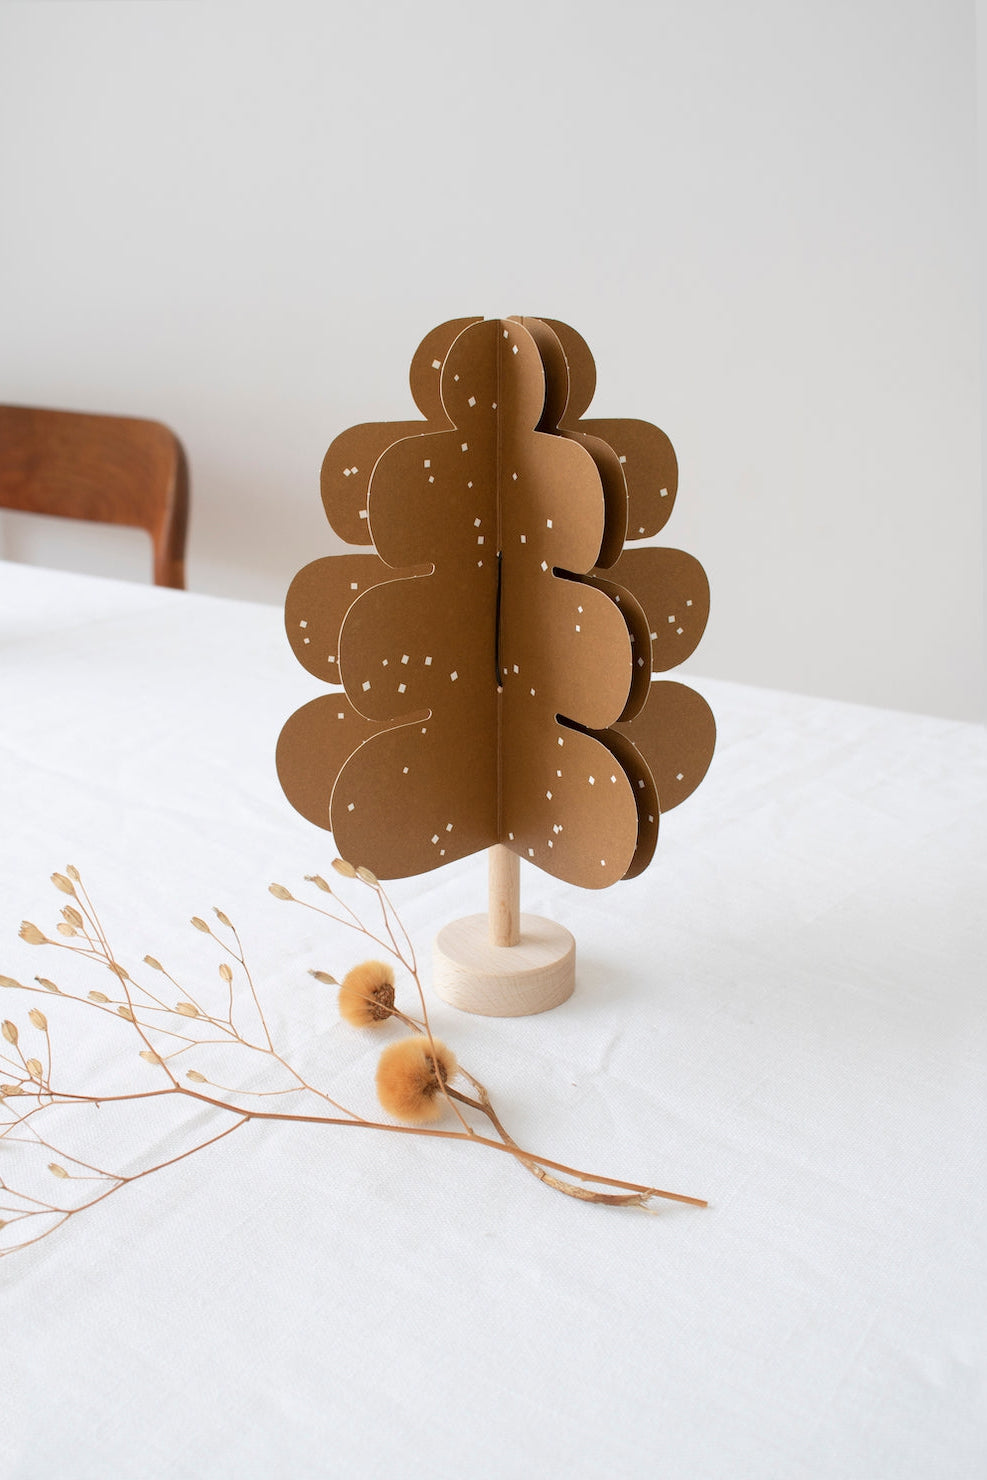 DIY Wood and paper OAK tree decoration